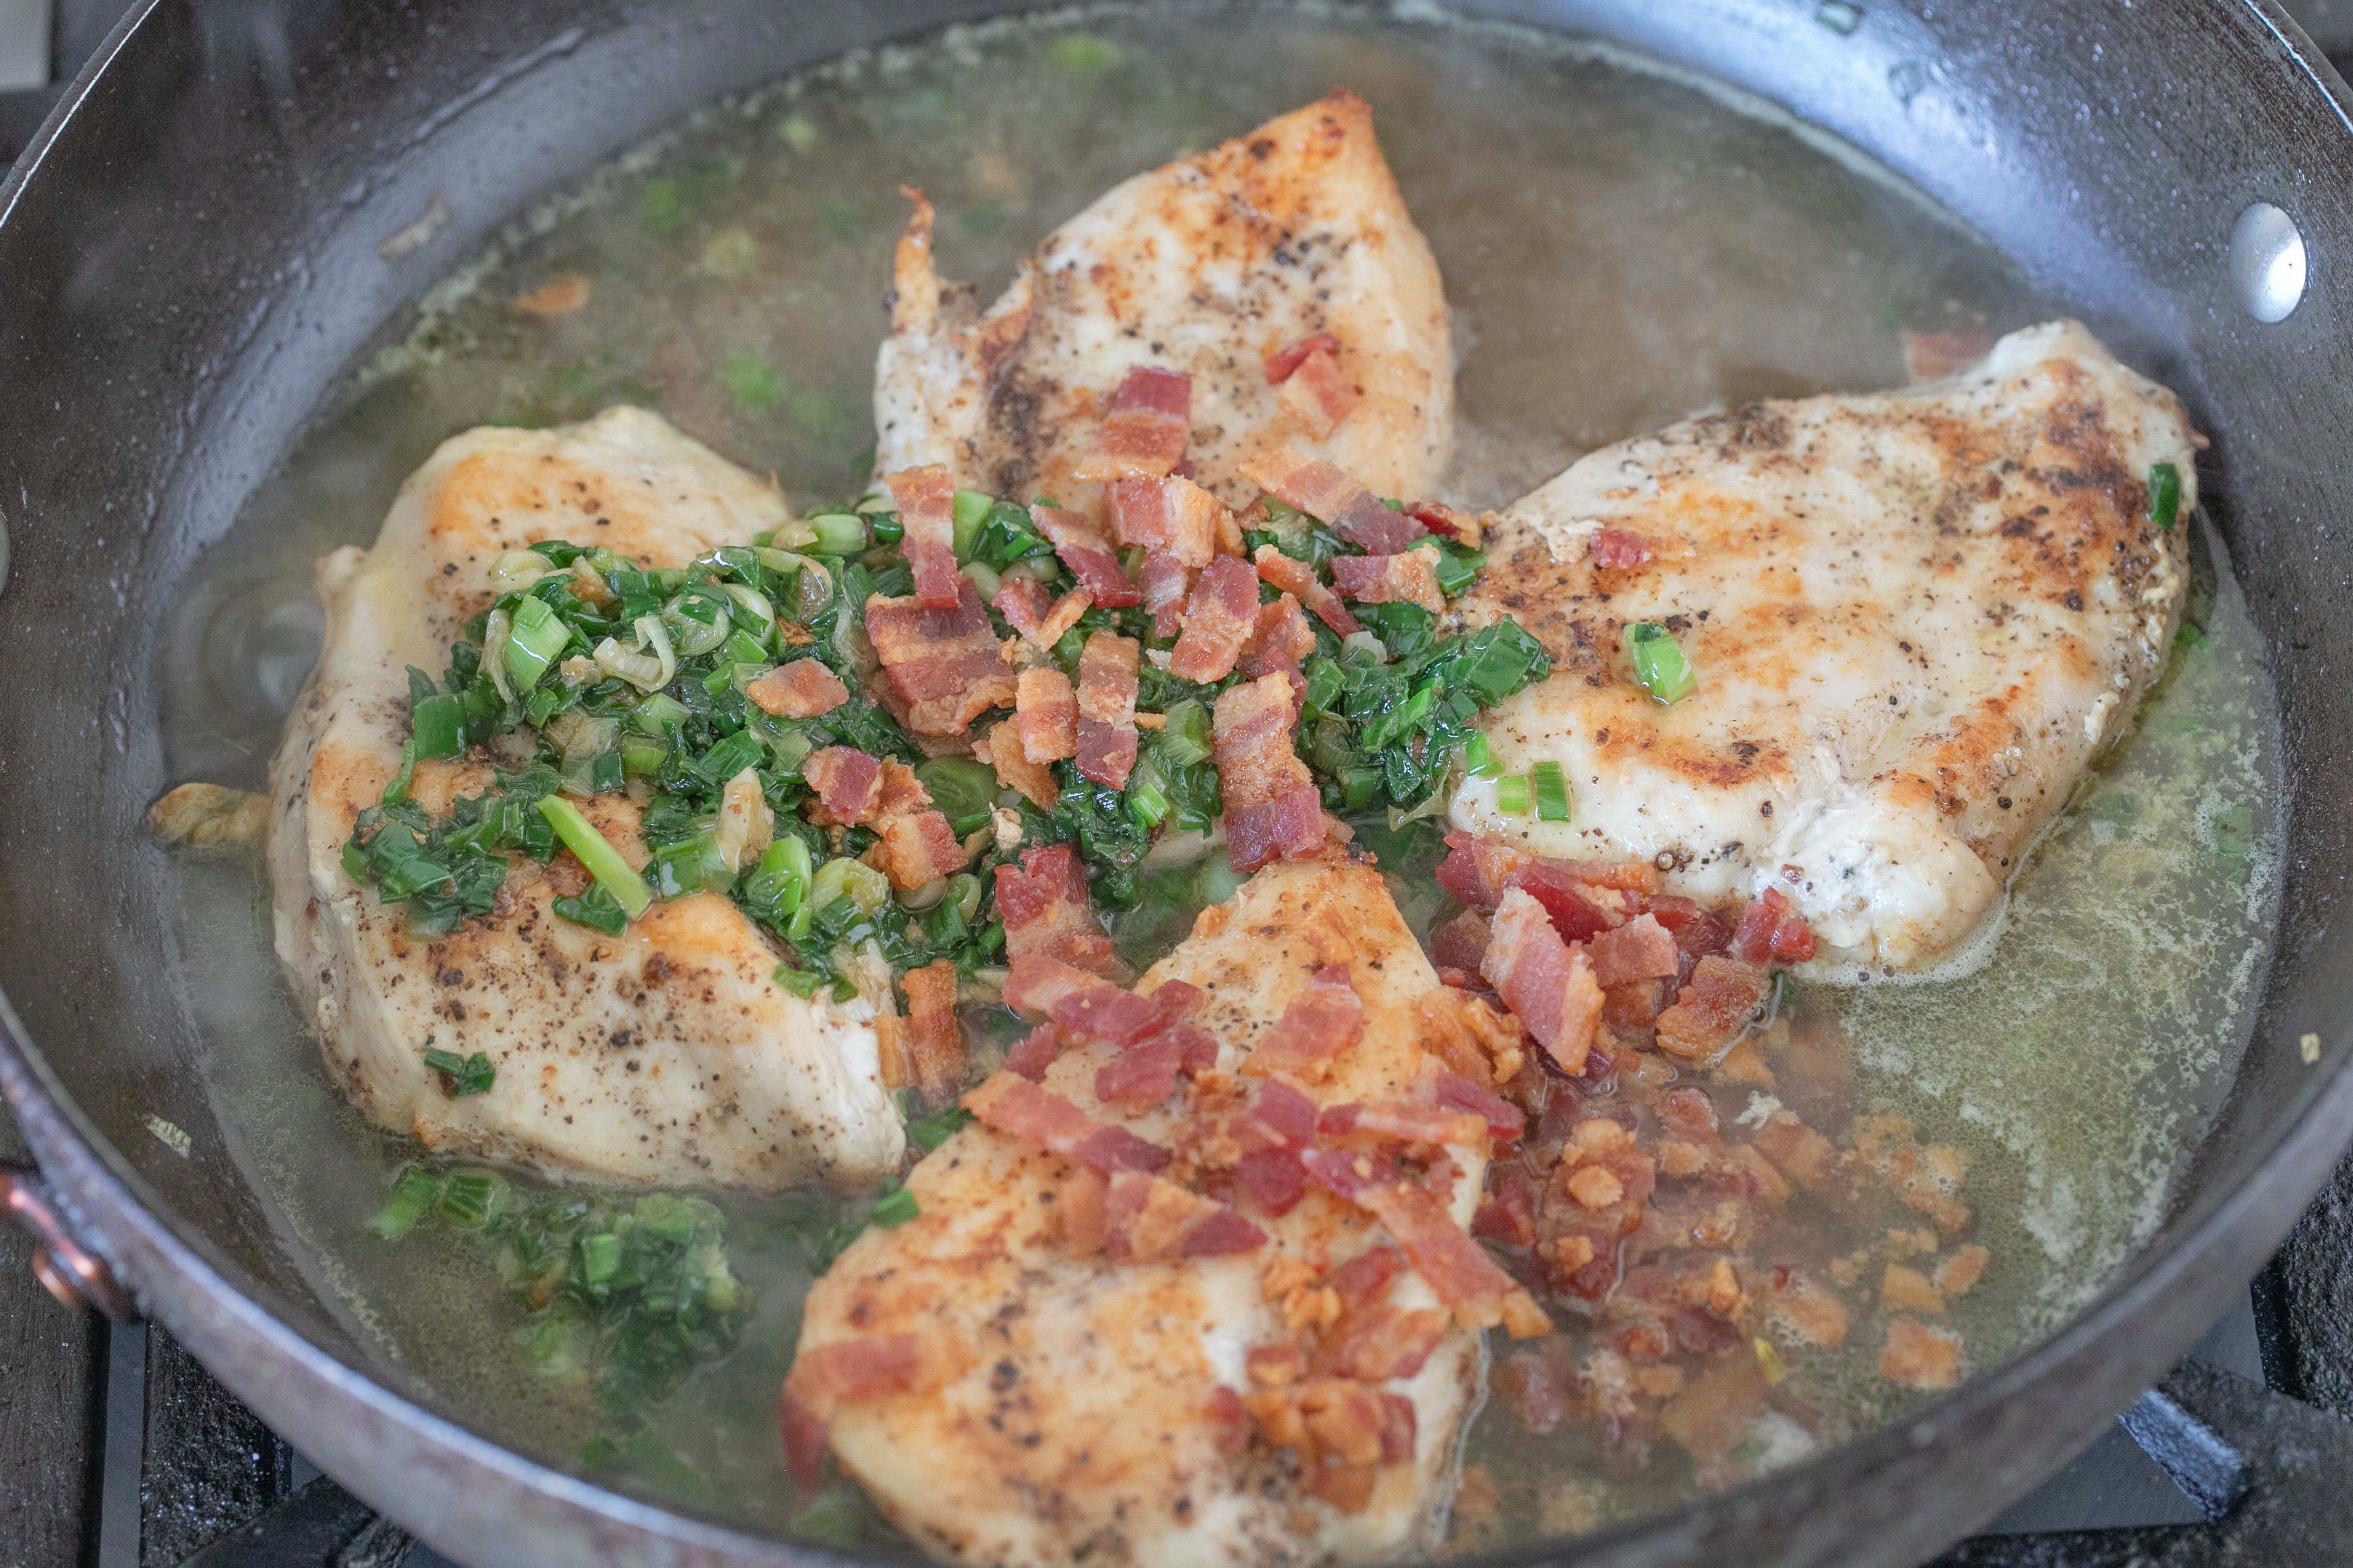 Chicken cooking in broth, green onions and bacon